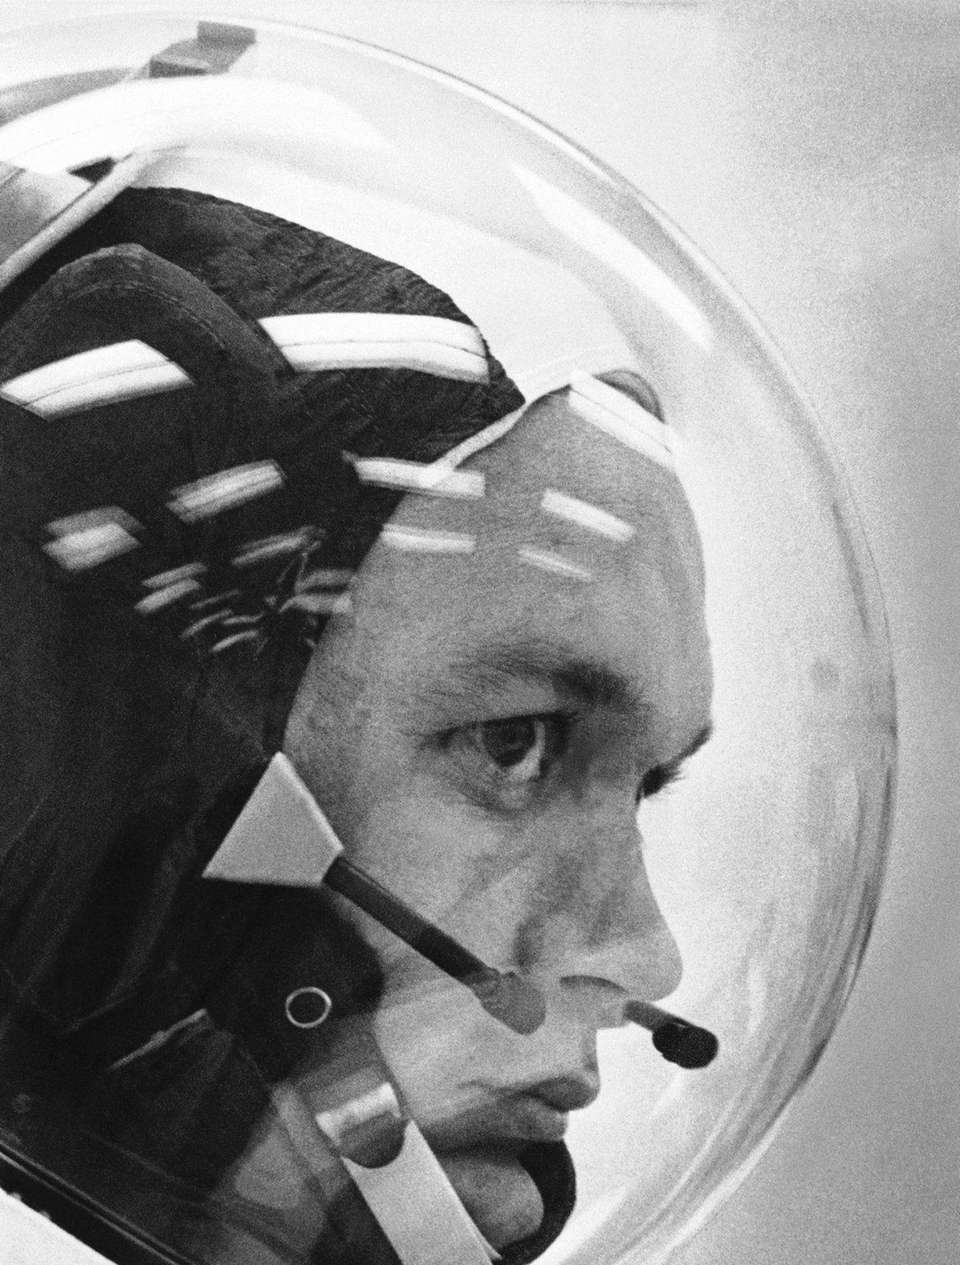 Astronaut Michael Collins wears the space helmet for